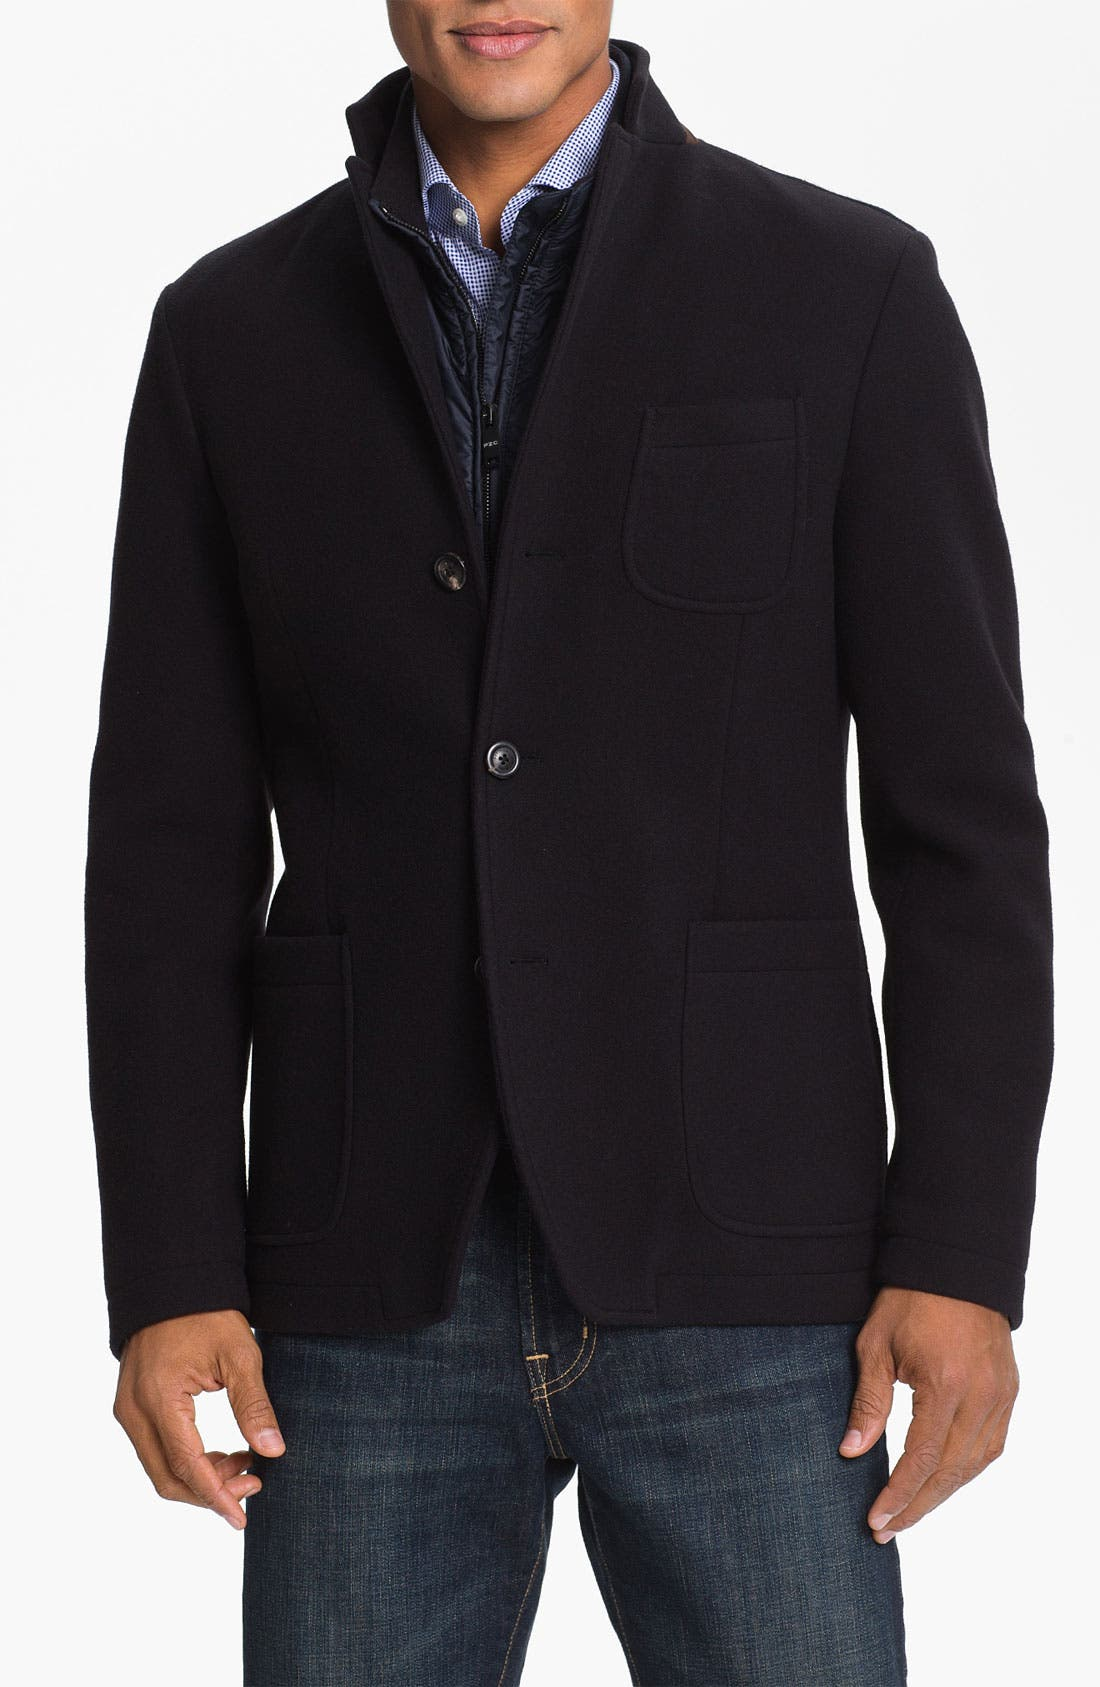 Main Image - Pal Zileri Wool Blend Jacket